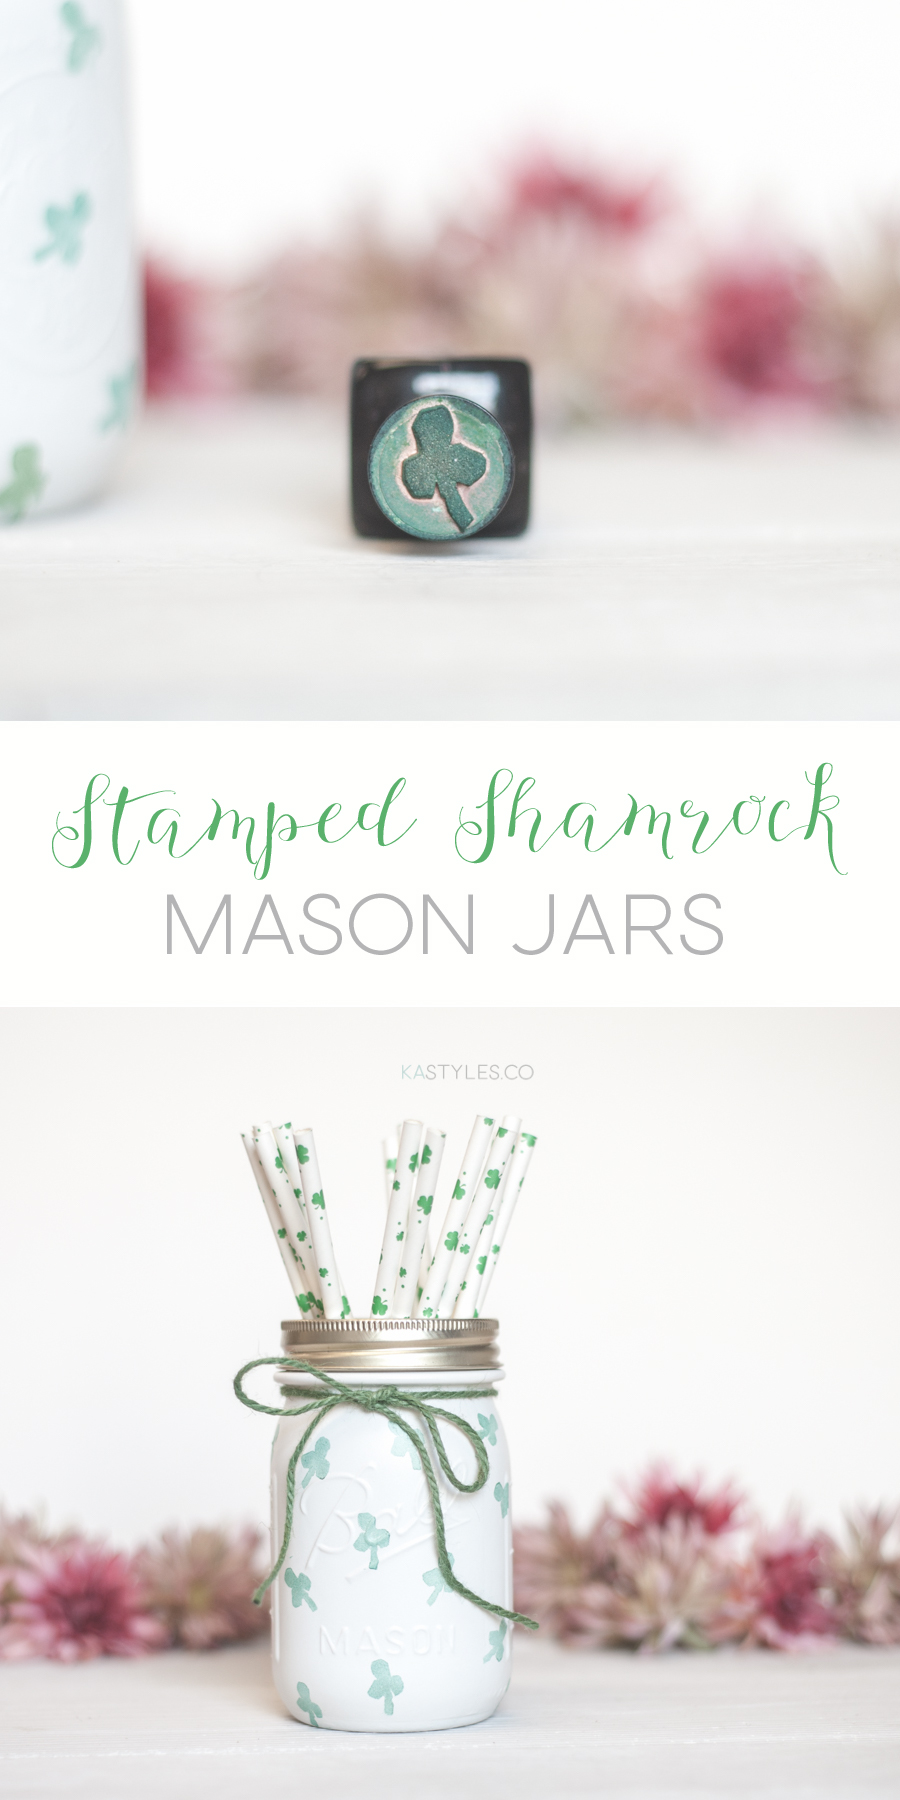 Shamrock stamped mason jar decor.